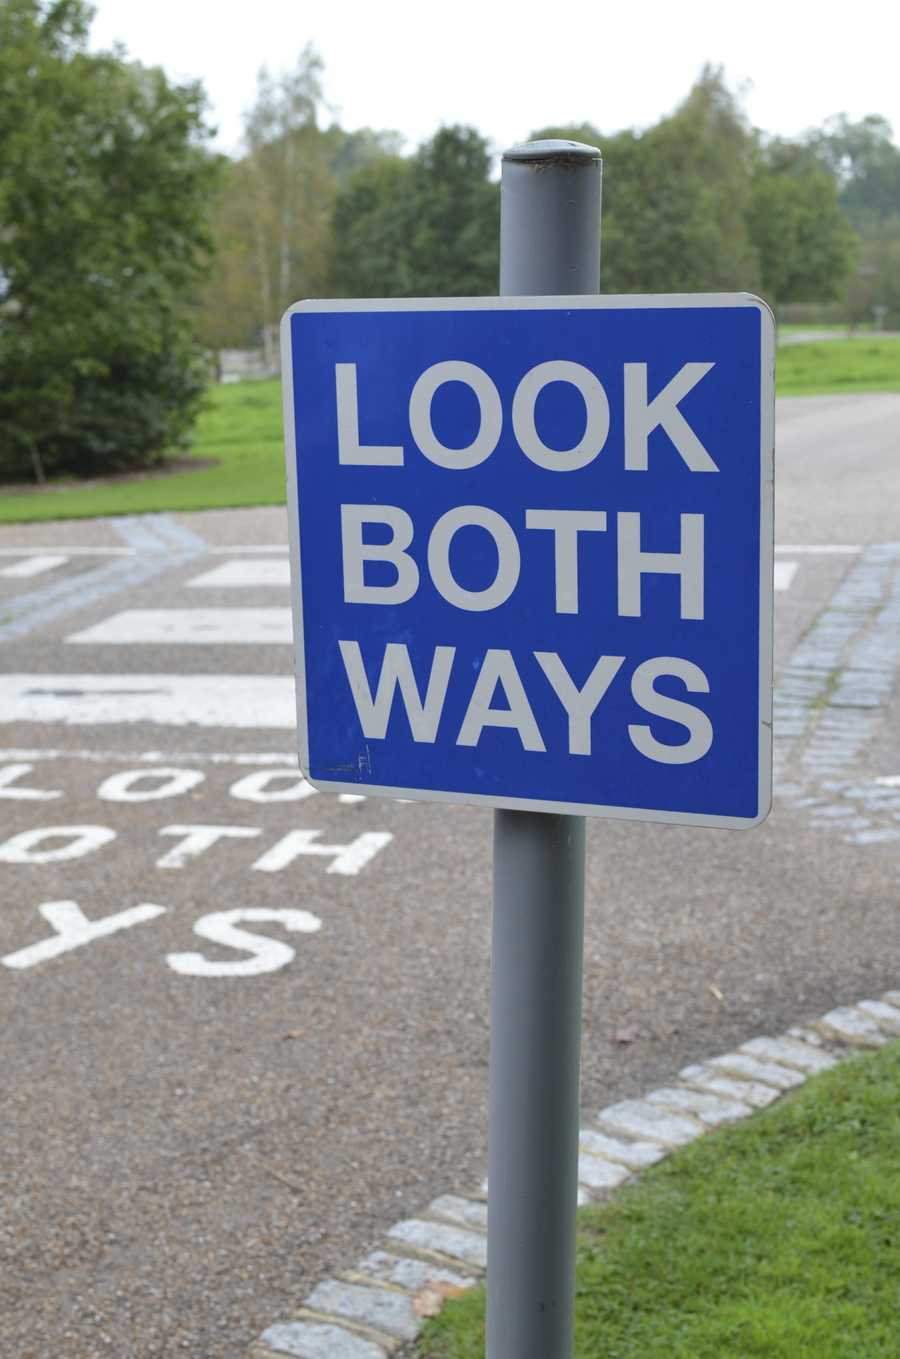 Use cross walks and traffic lights to cross streets and remember that at night, drivers may not see you.